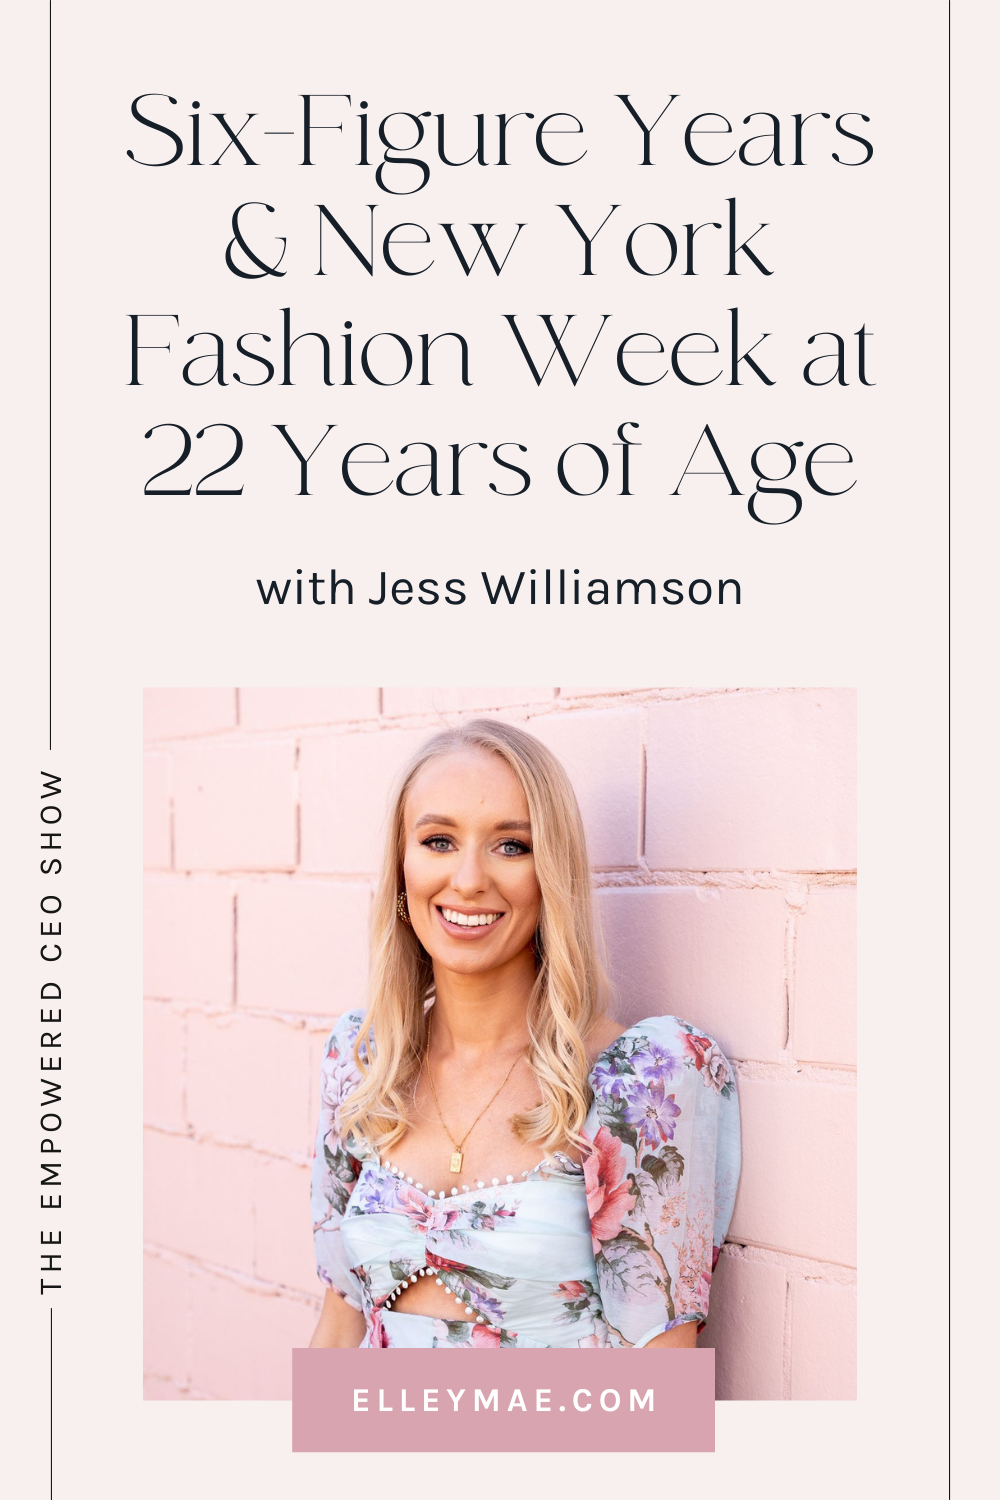 088. Six-Figure Years & New York Fashion Week at 22 Years of Age with Jess Williamson